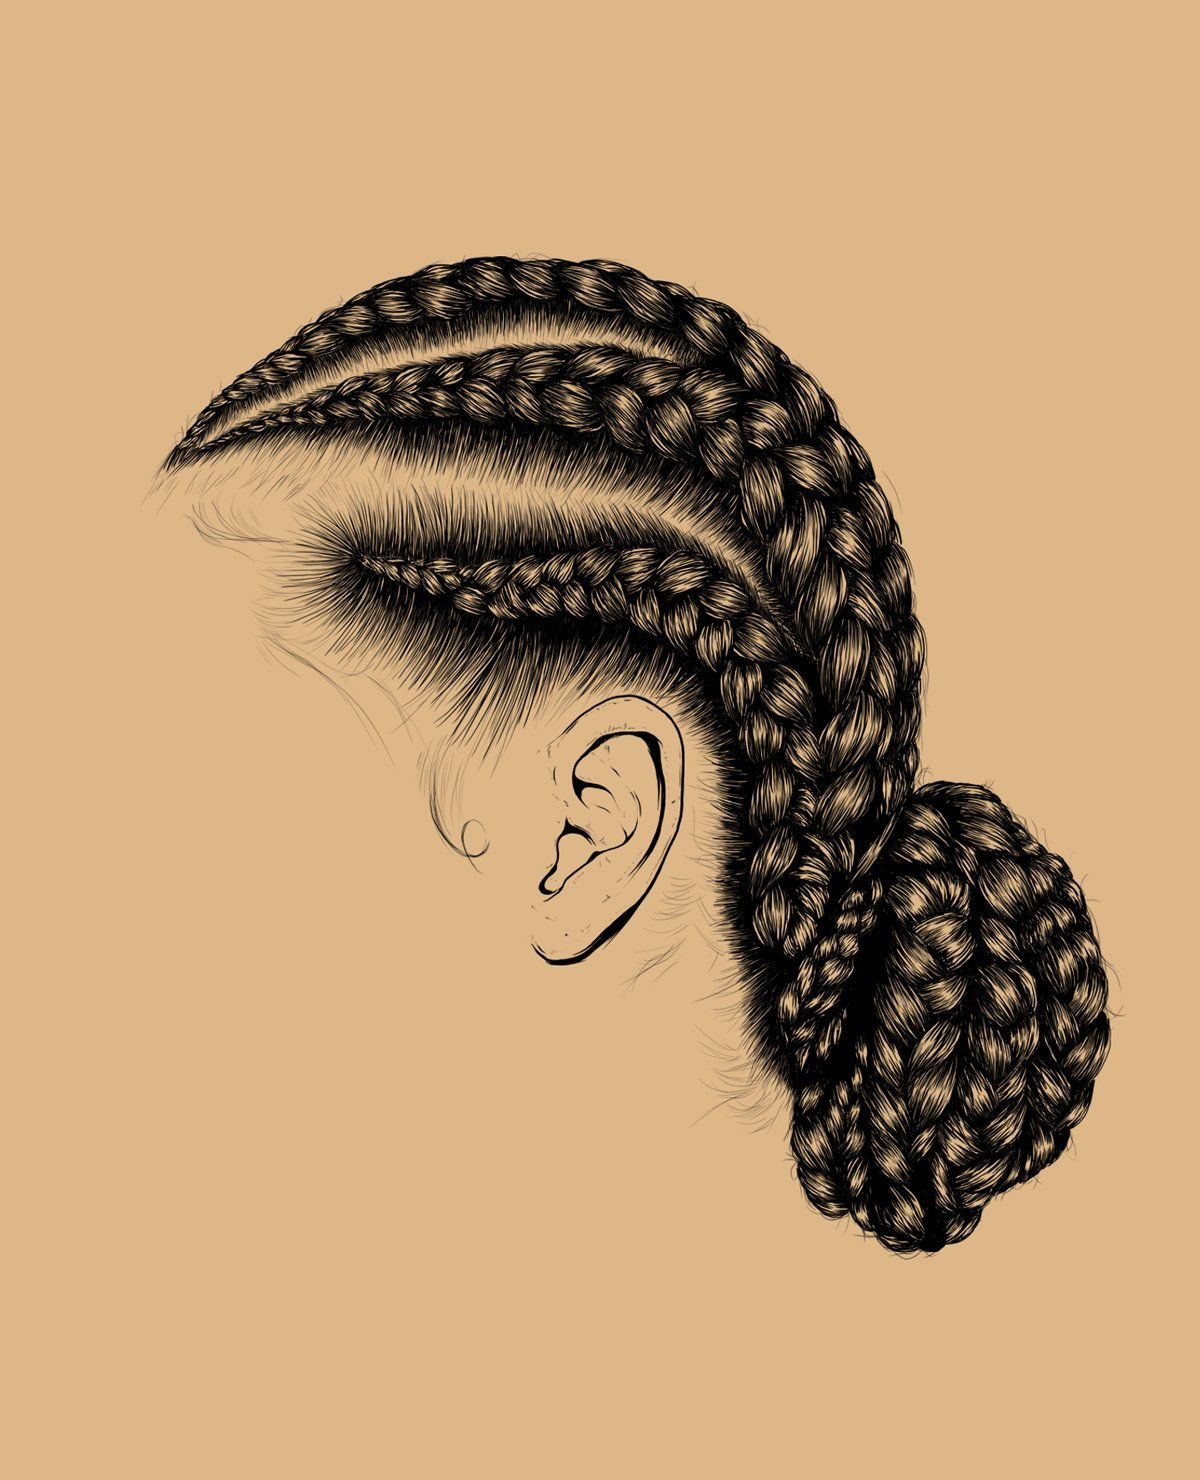 How To Draw Cornrows : cornrows, Braids,, Hair,, Illustration,, Digital, Illustrator, Illustration